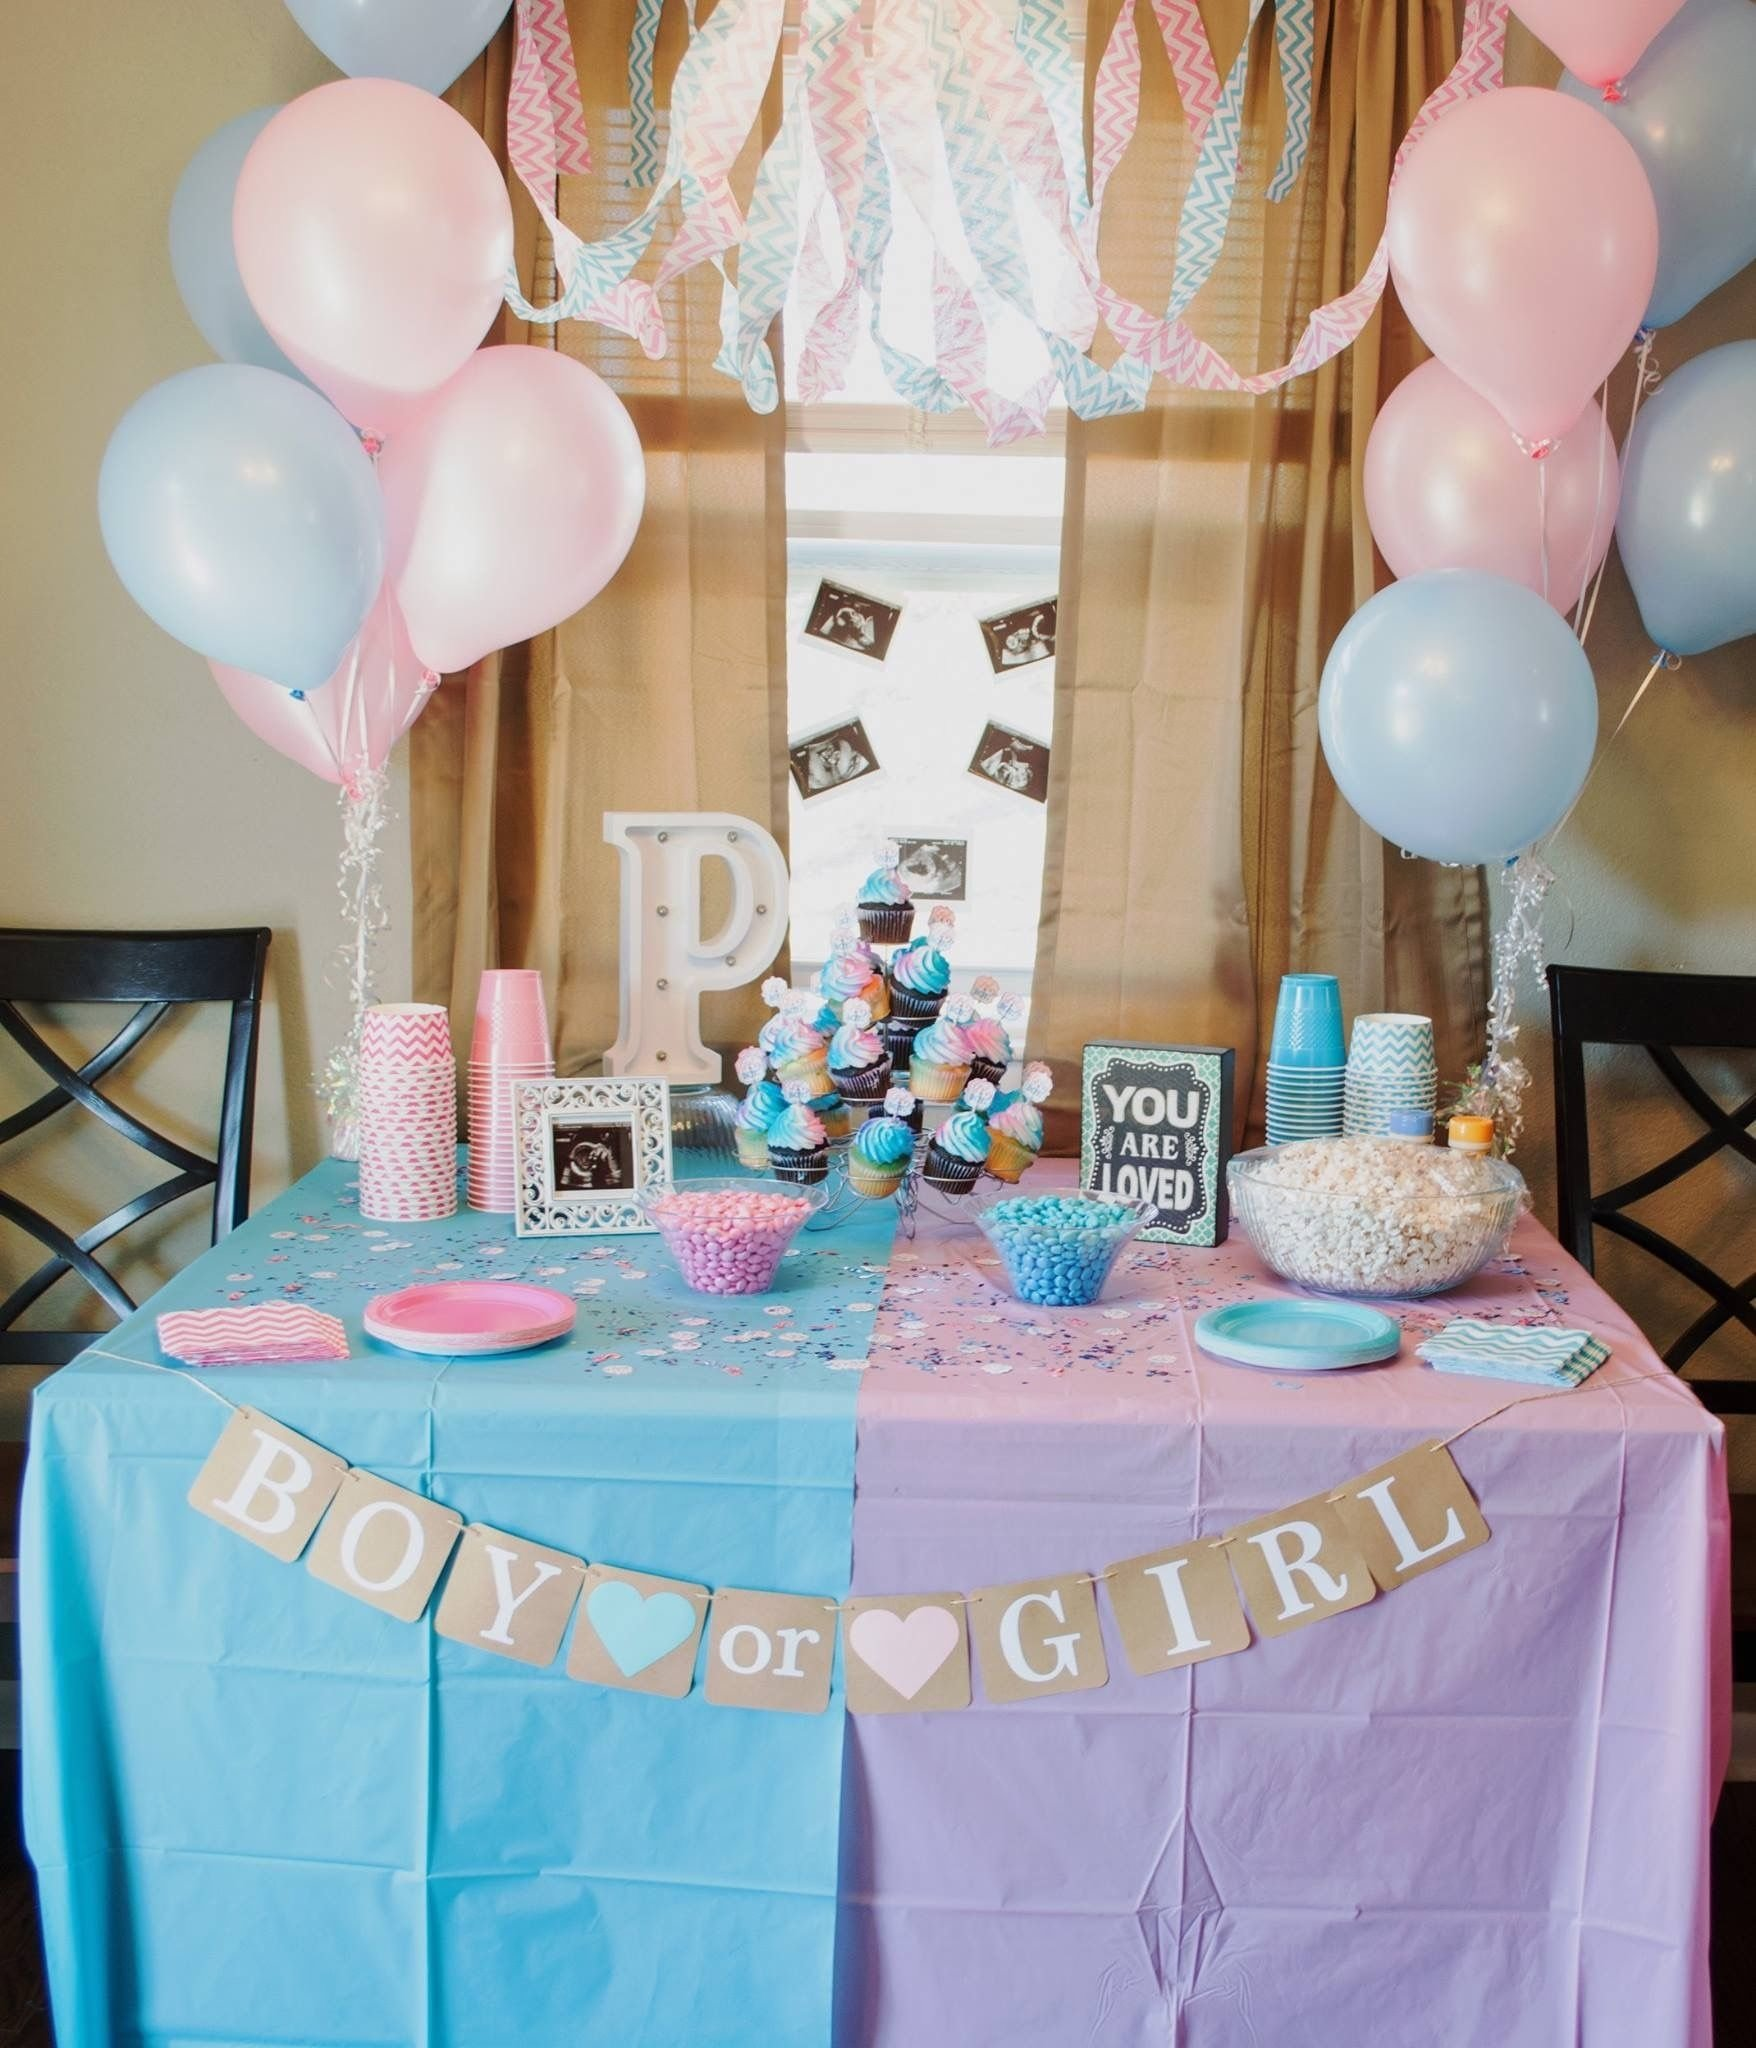 10 Ideal Gender Reveal Party Decoration Ideas 27 gender reveal party food ideas while pregnant gender reveal 3 2020